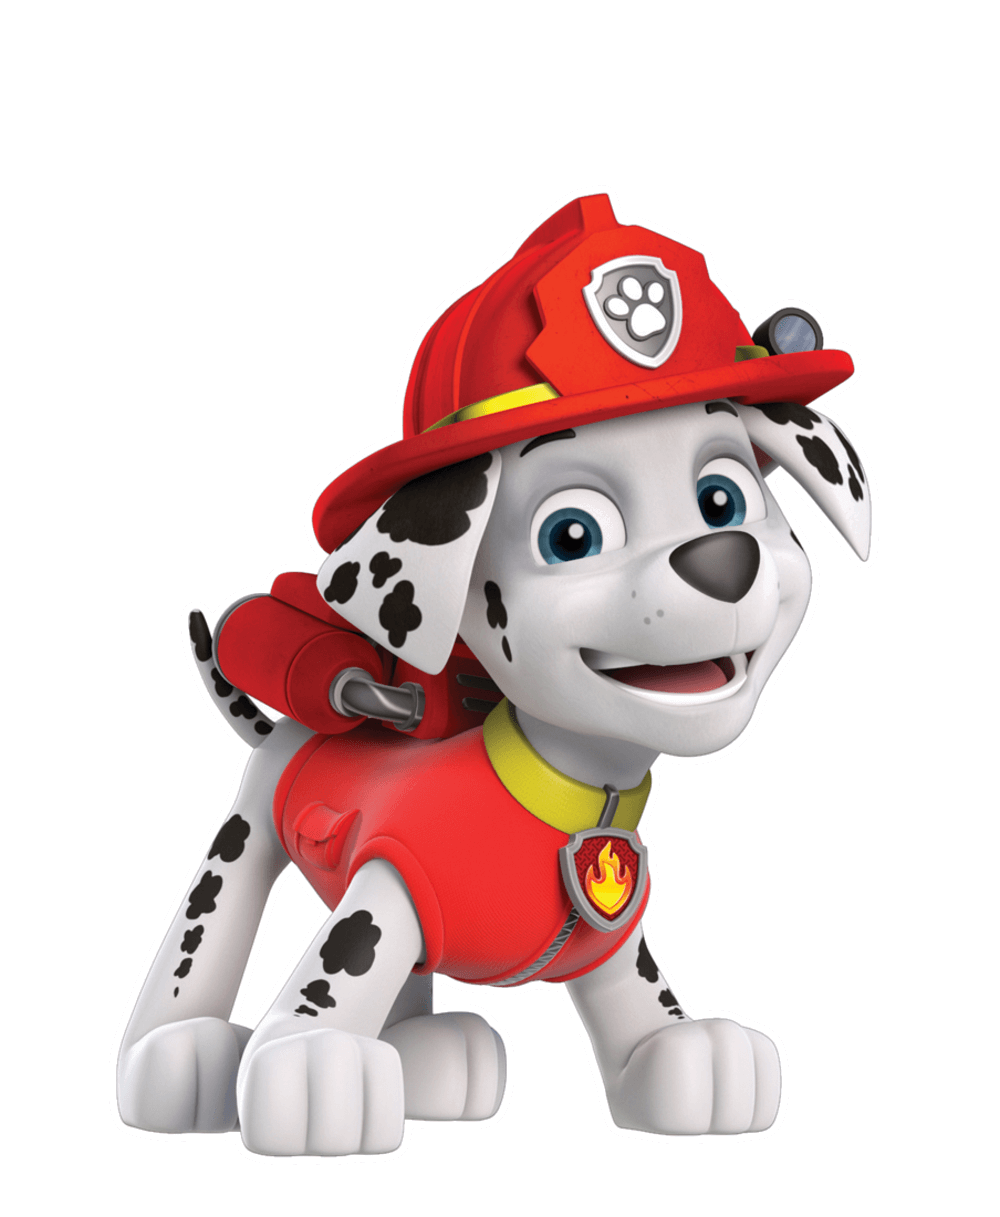 Image Marshall Paw Patrol Png 41897 Free Icons And Png